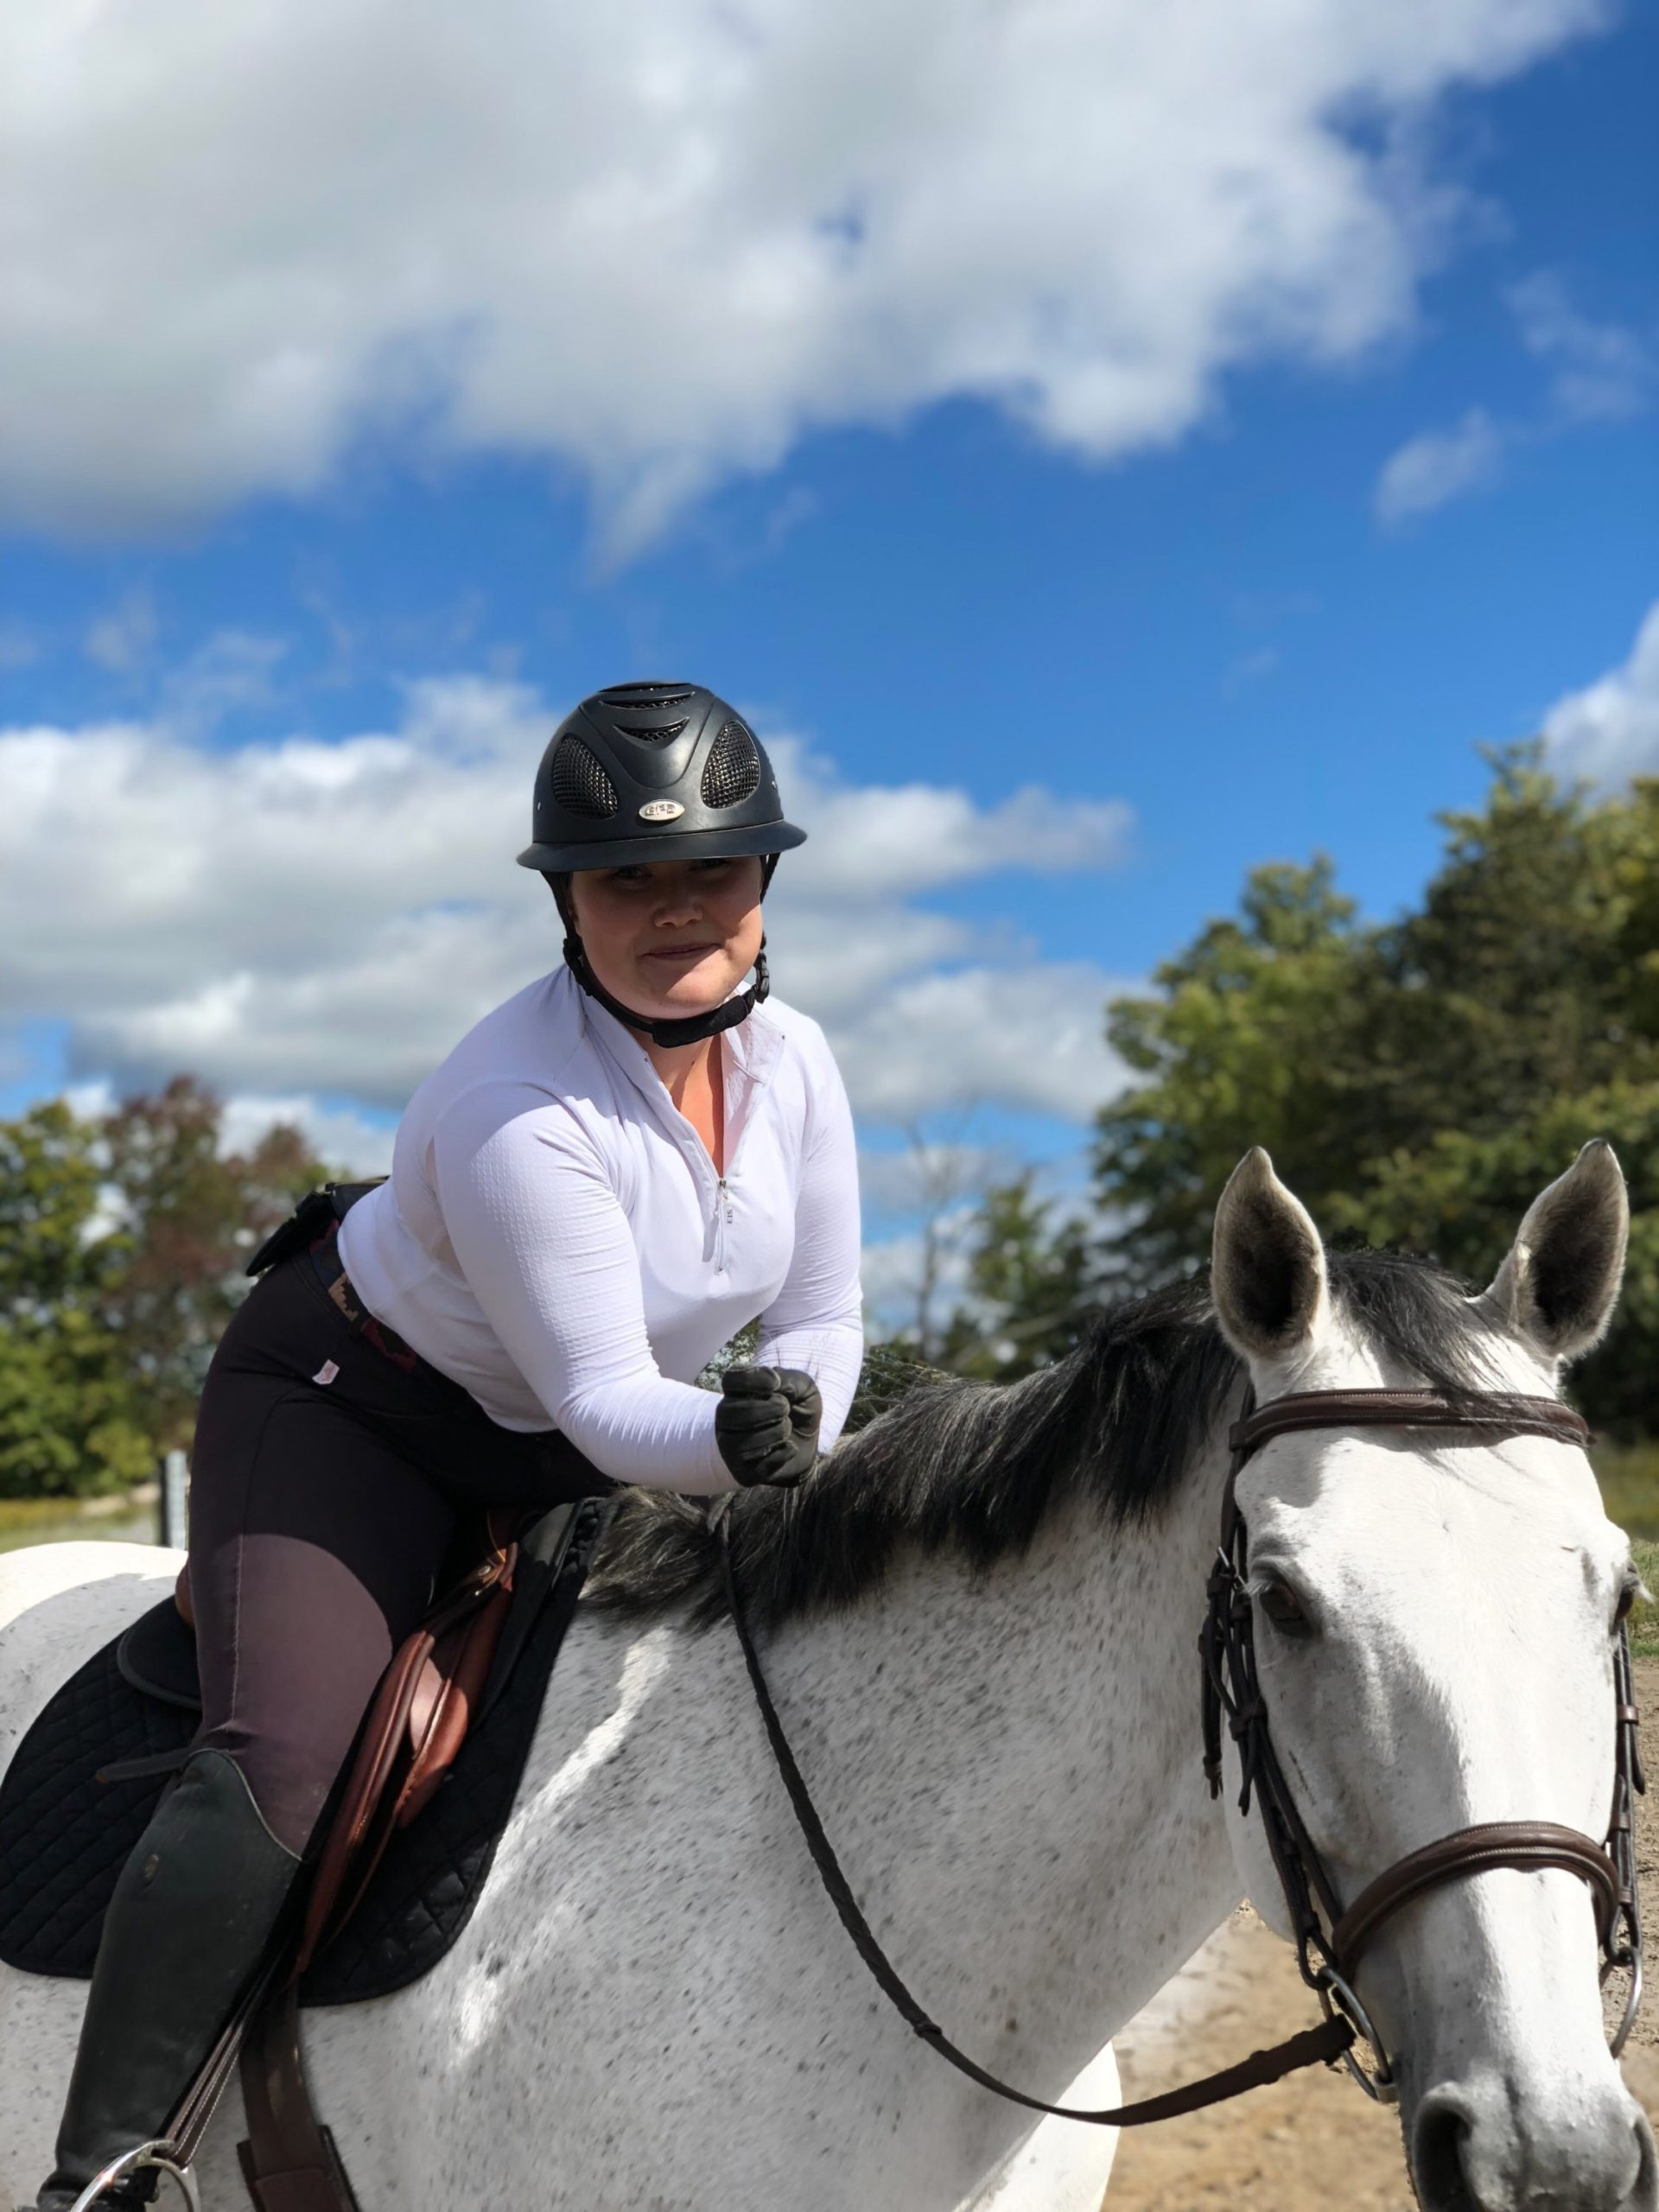 Leah from @bigbootybreeches is an incredible advocate for body positivity in the Equestrian community